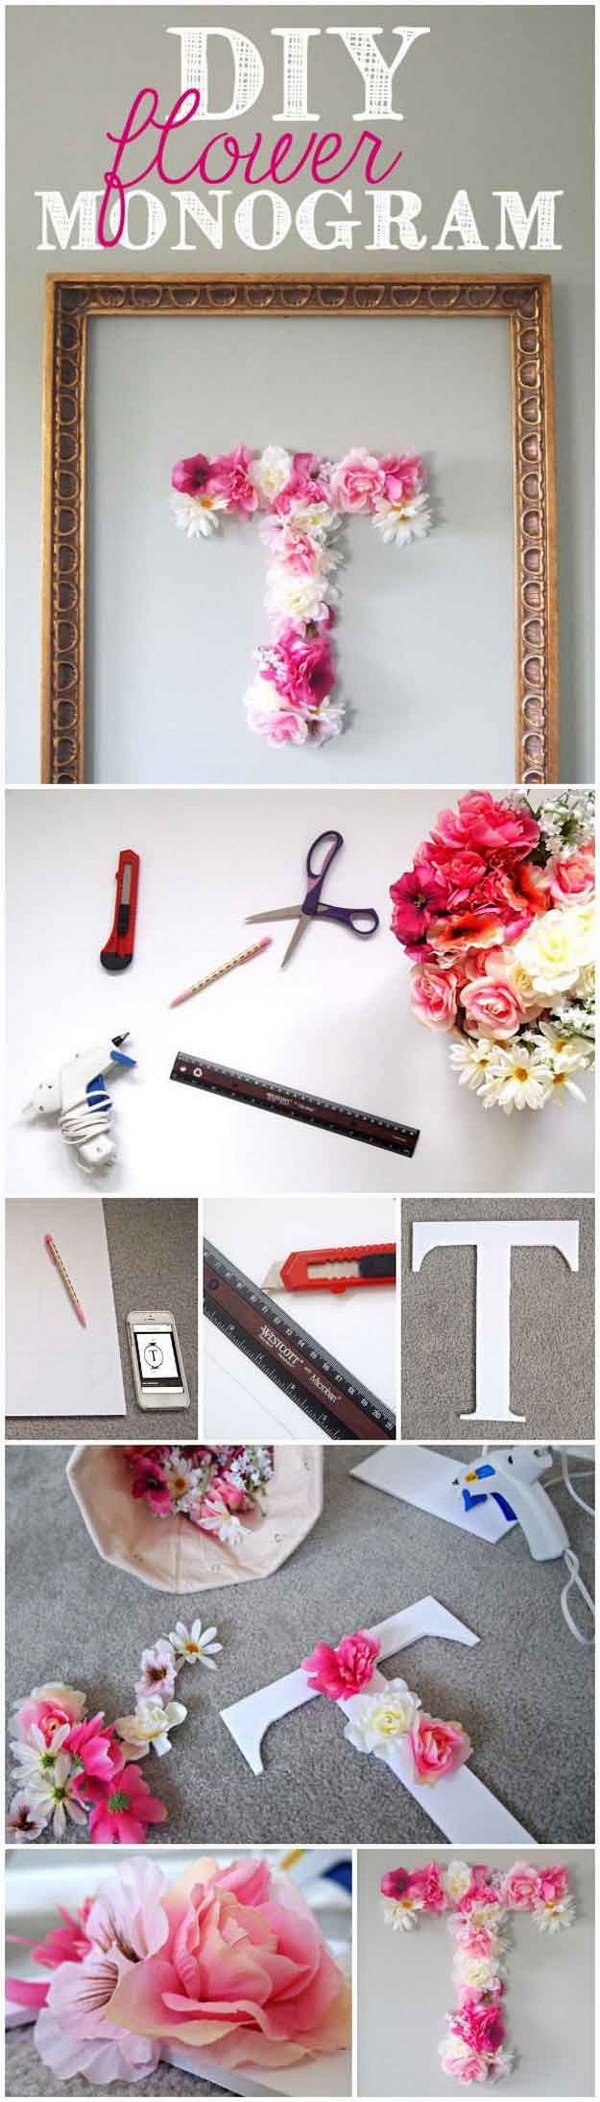 Cool Diy Ideas Tutorials For Teenage Girls Bedroom Decoration For Creative Juice